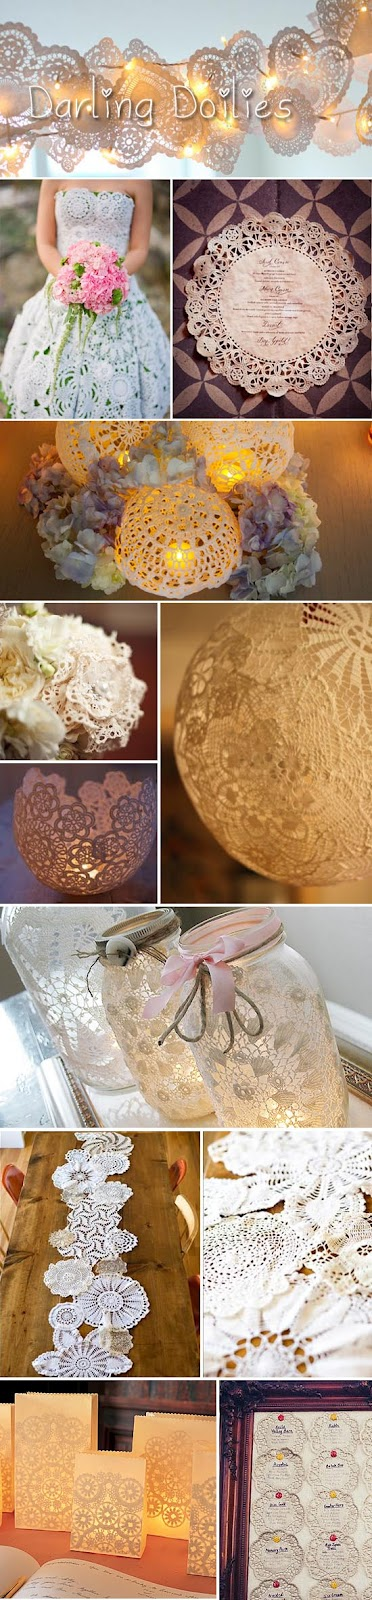 Darling doily wedding decor